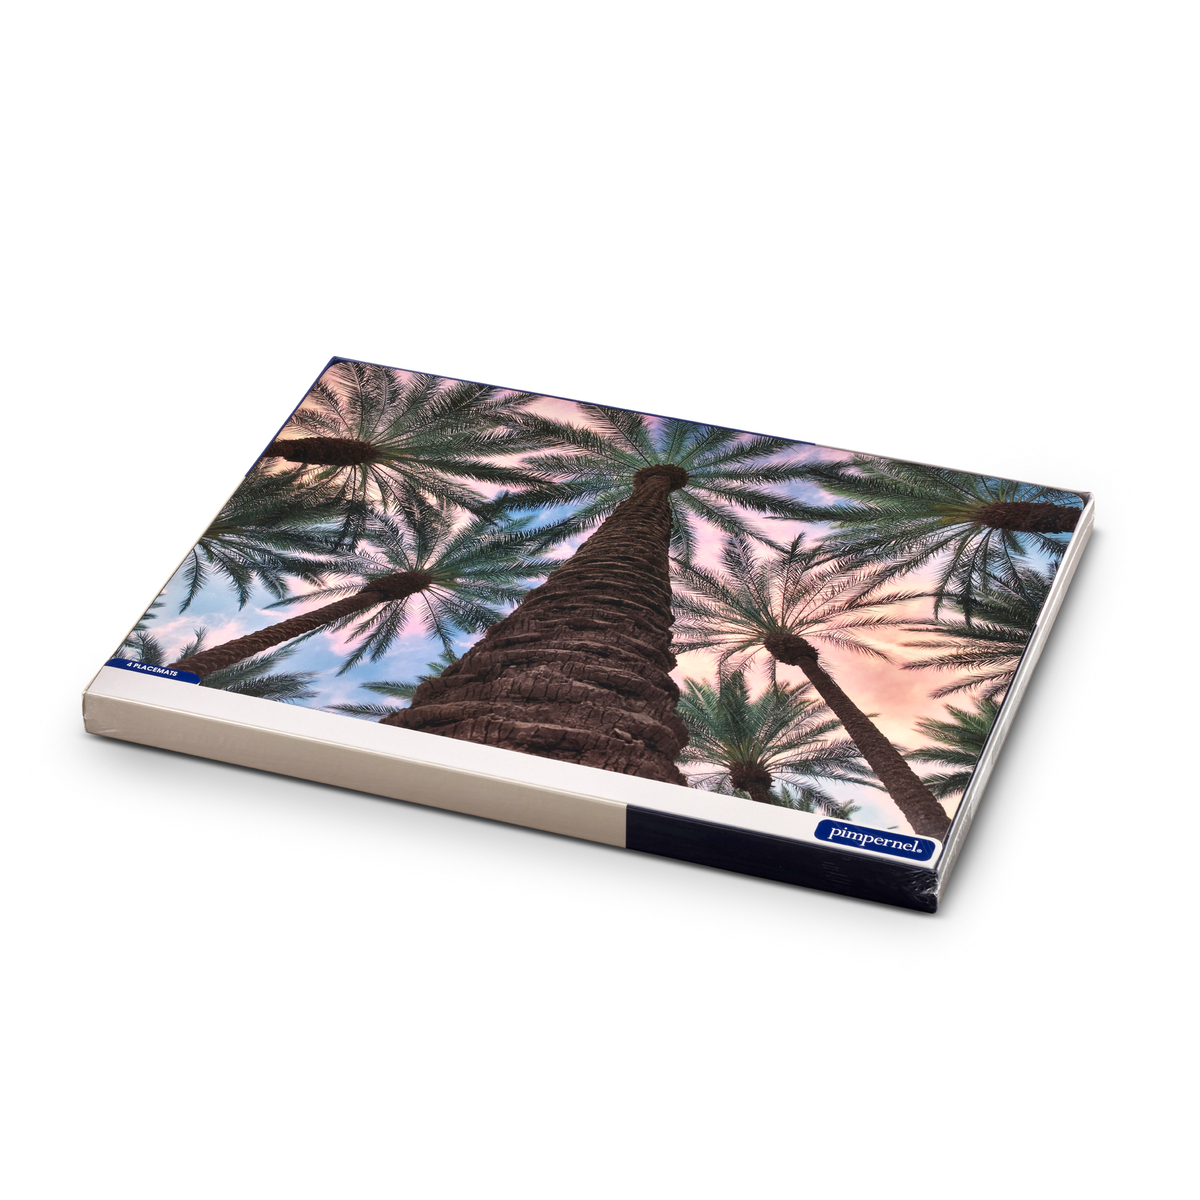 Pimpernel Tropical Placemats Set of 4 image number 4